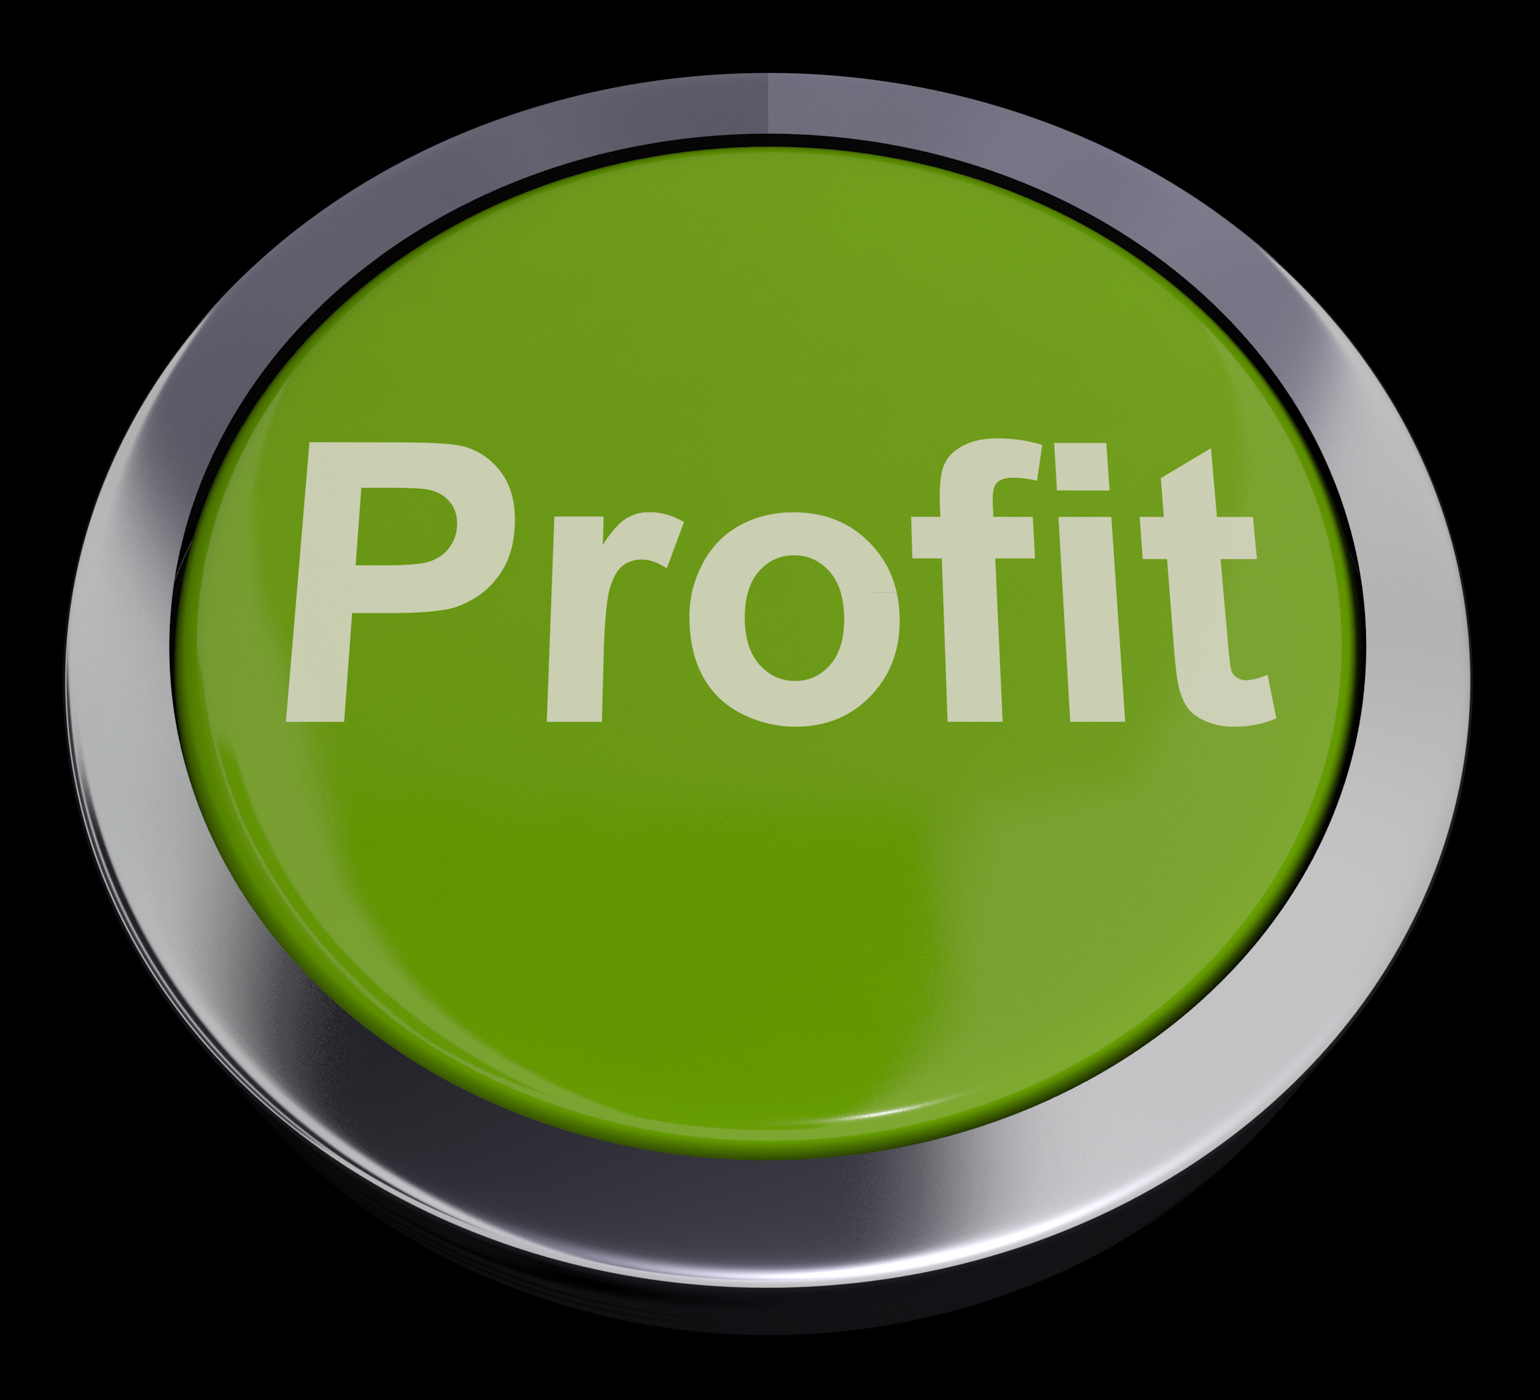 Profit computer button in green showing earnings and investment photo